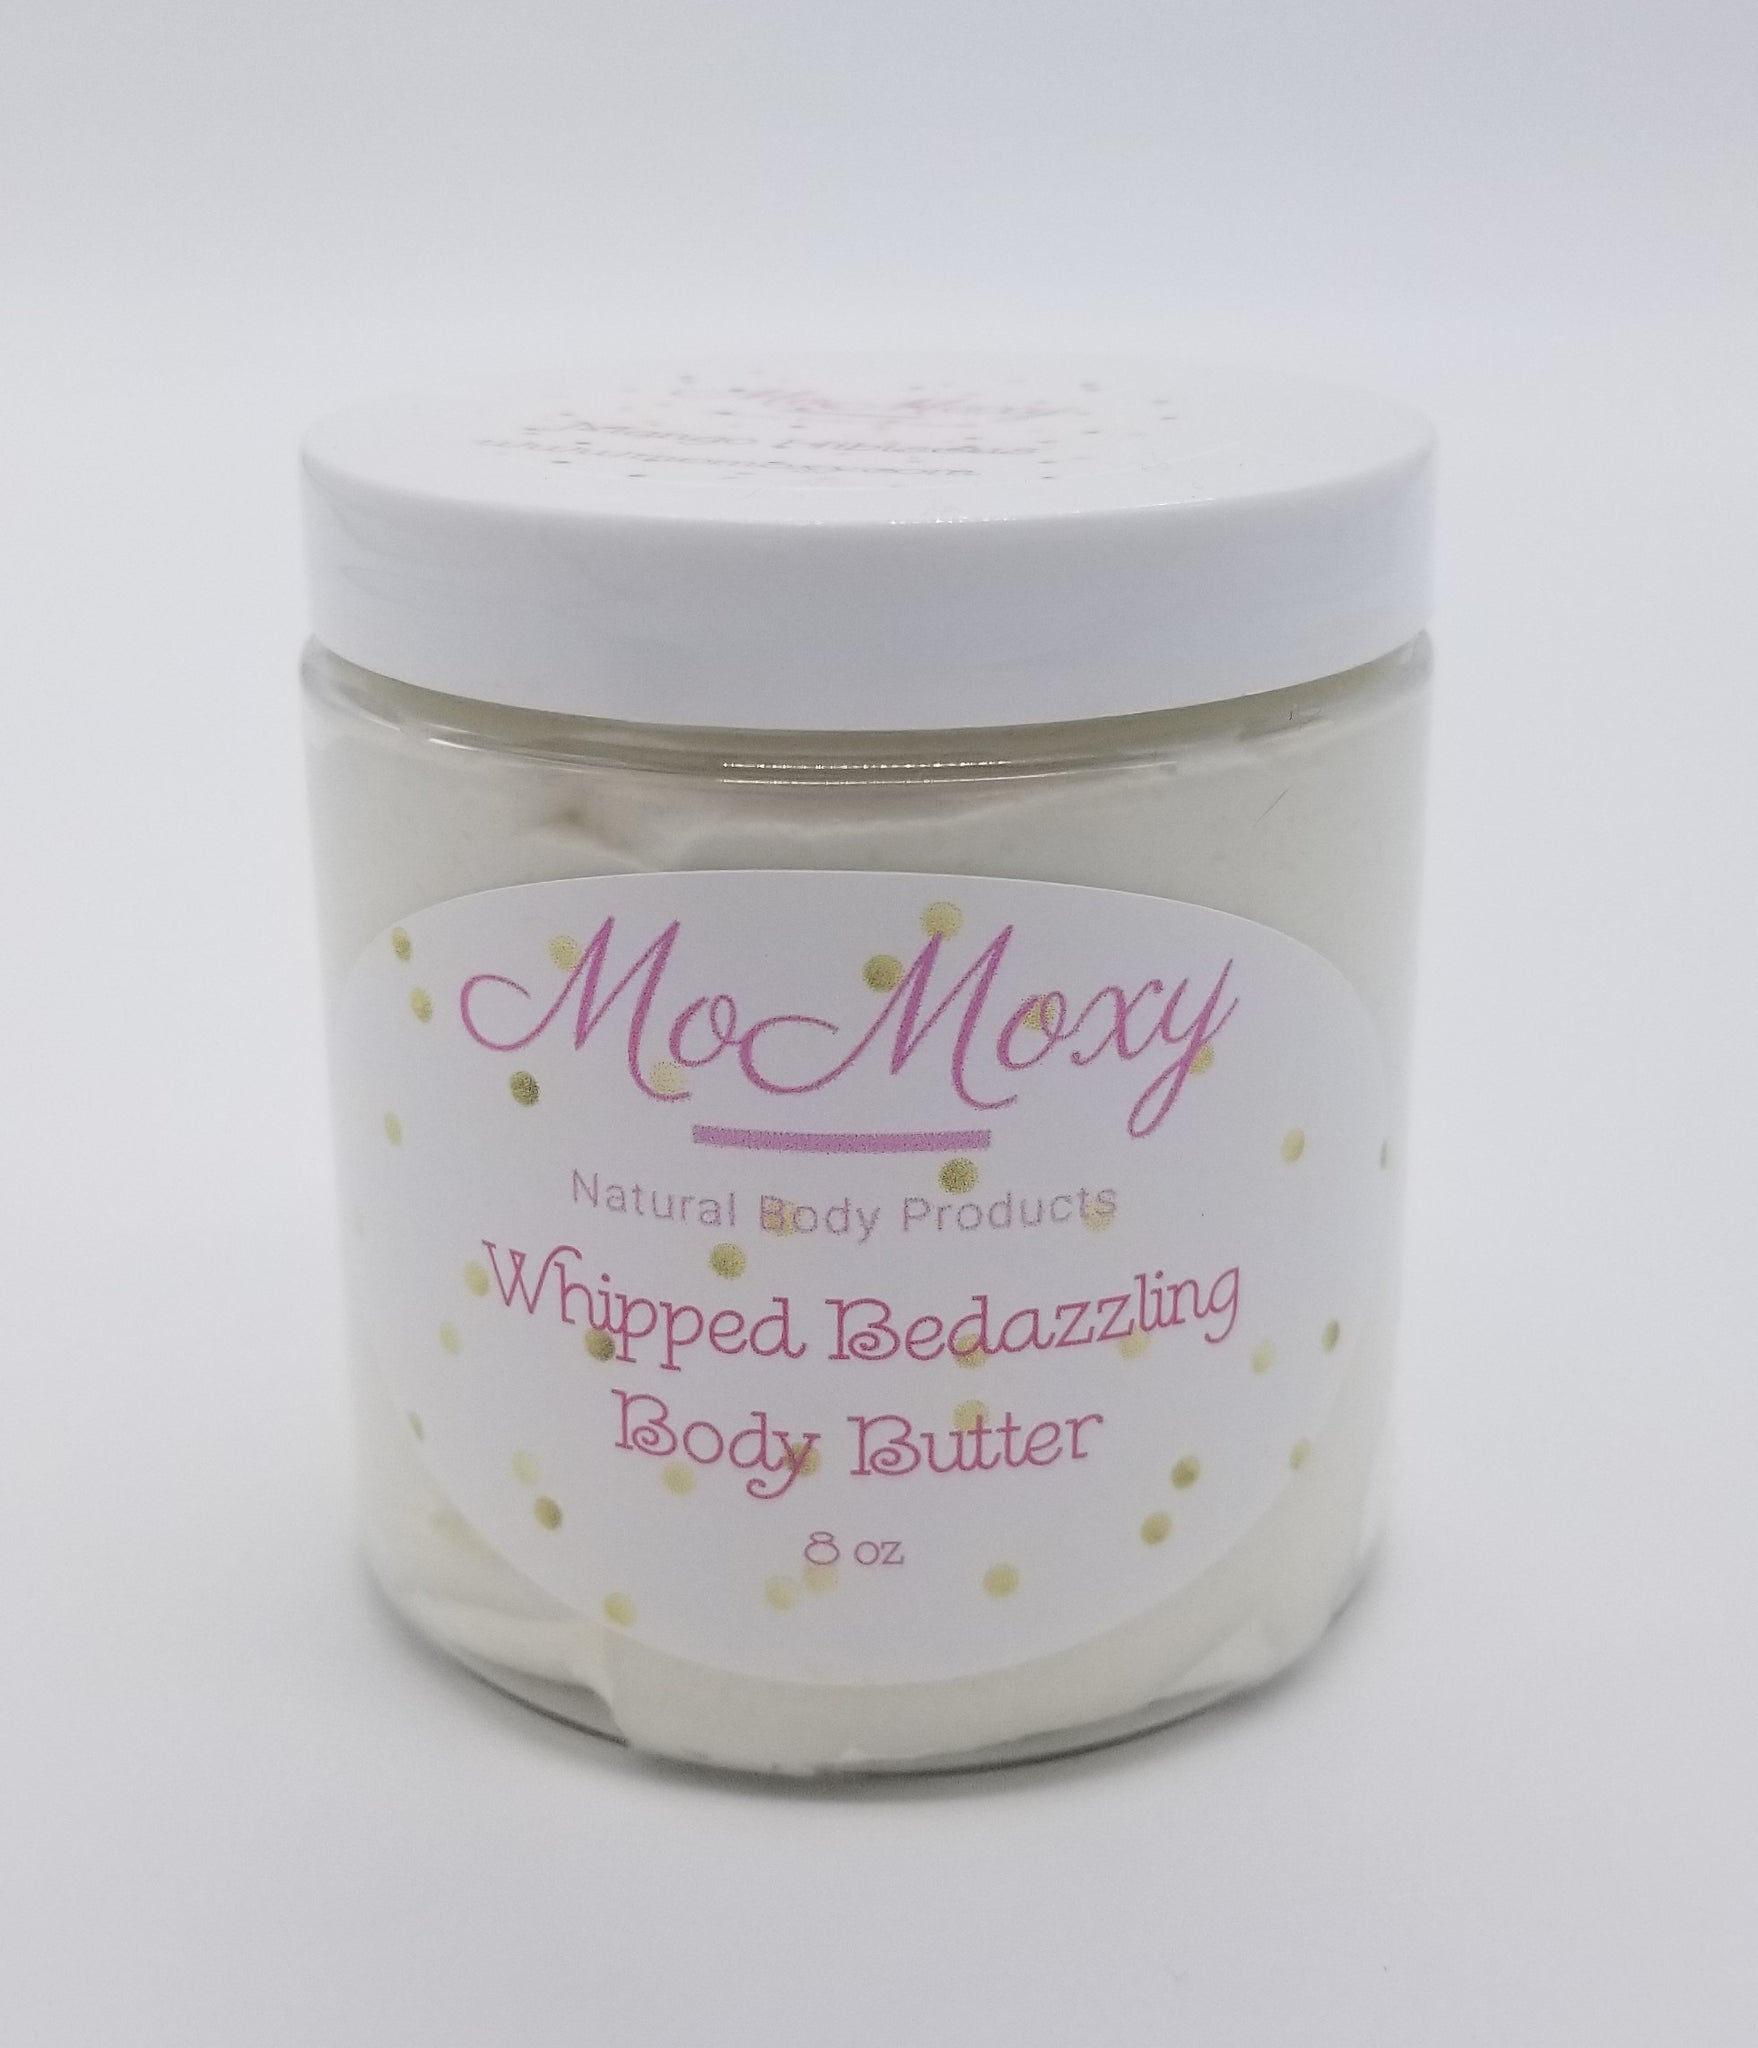 Whipped Bedazzling Body Butter